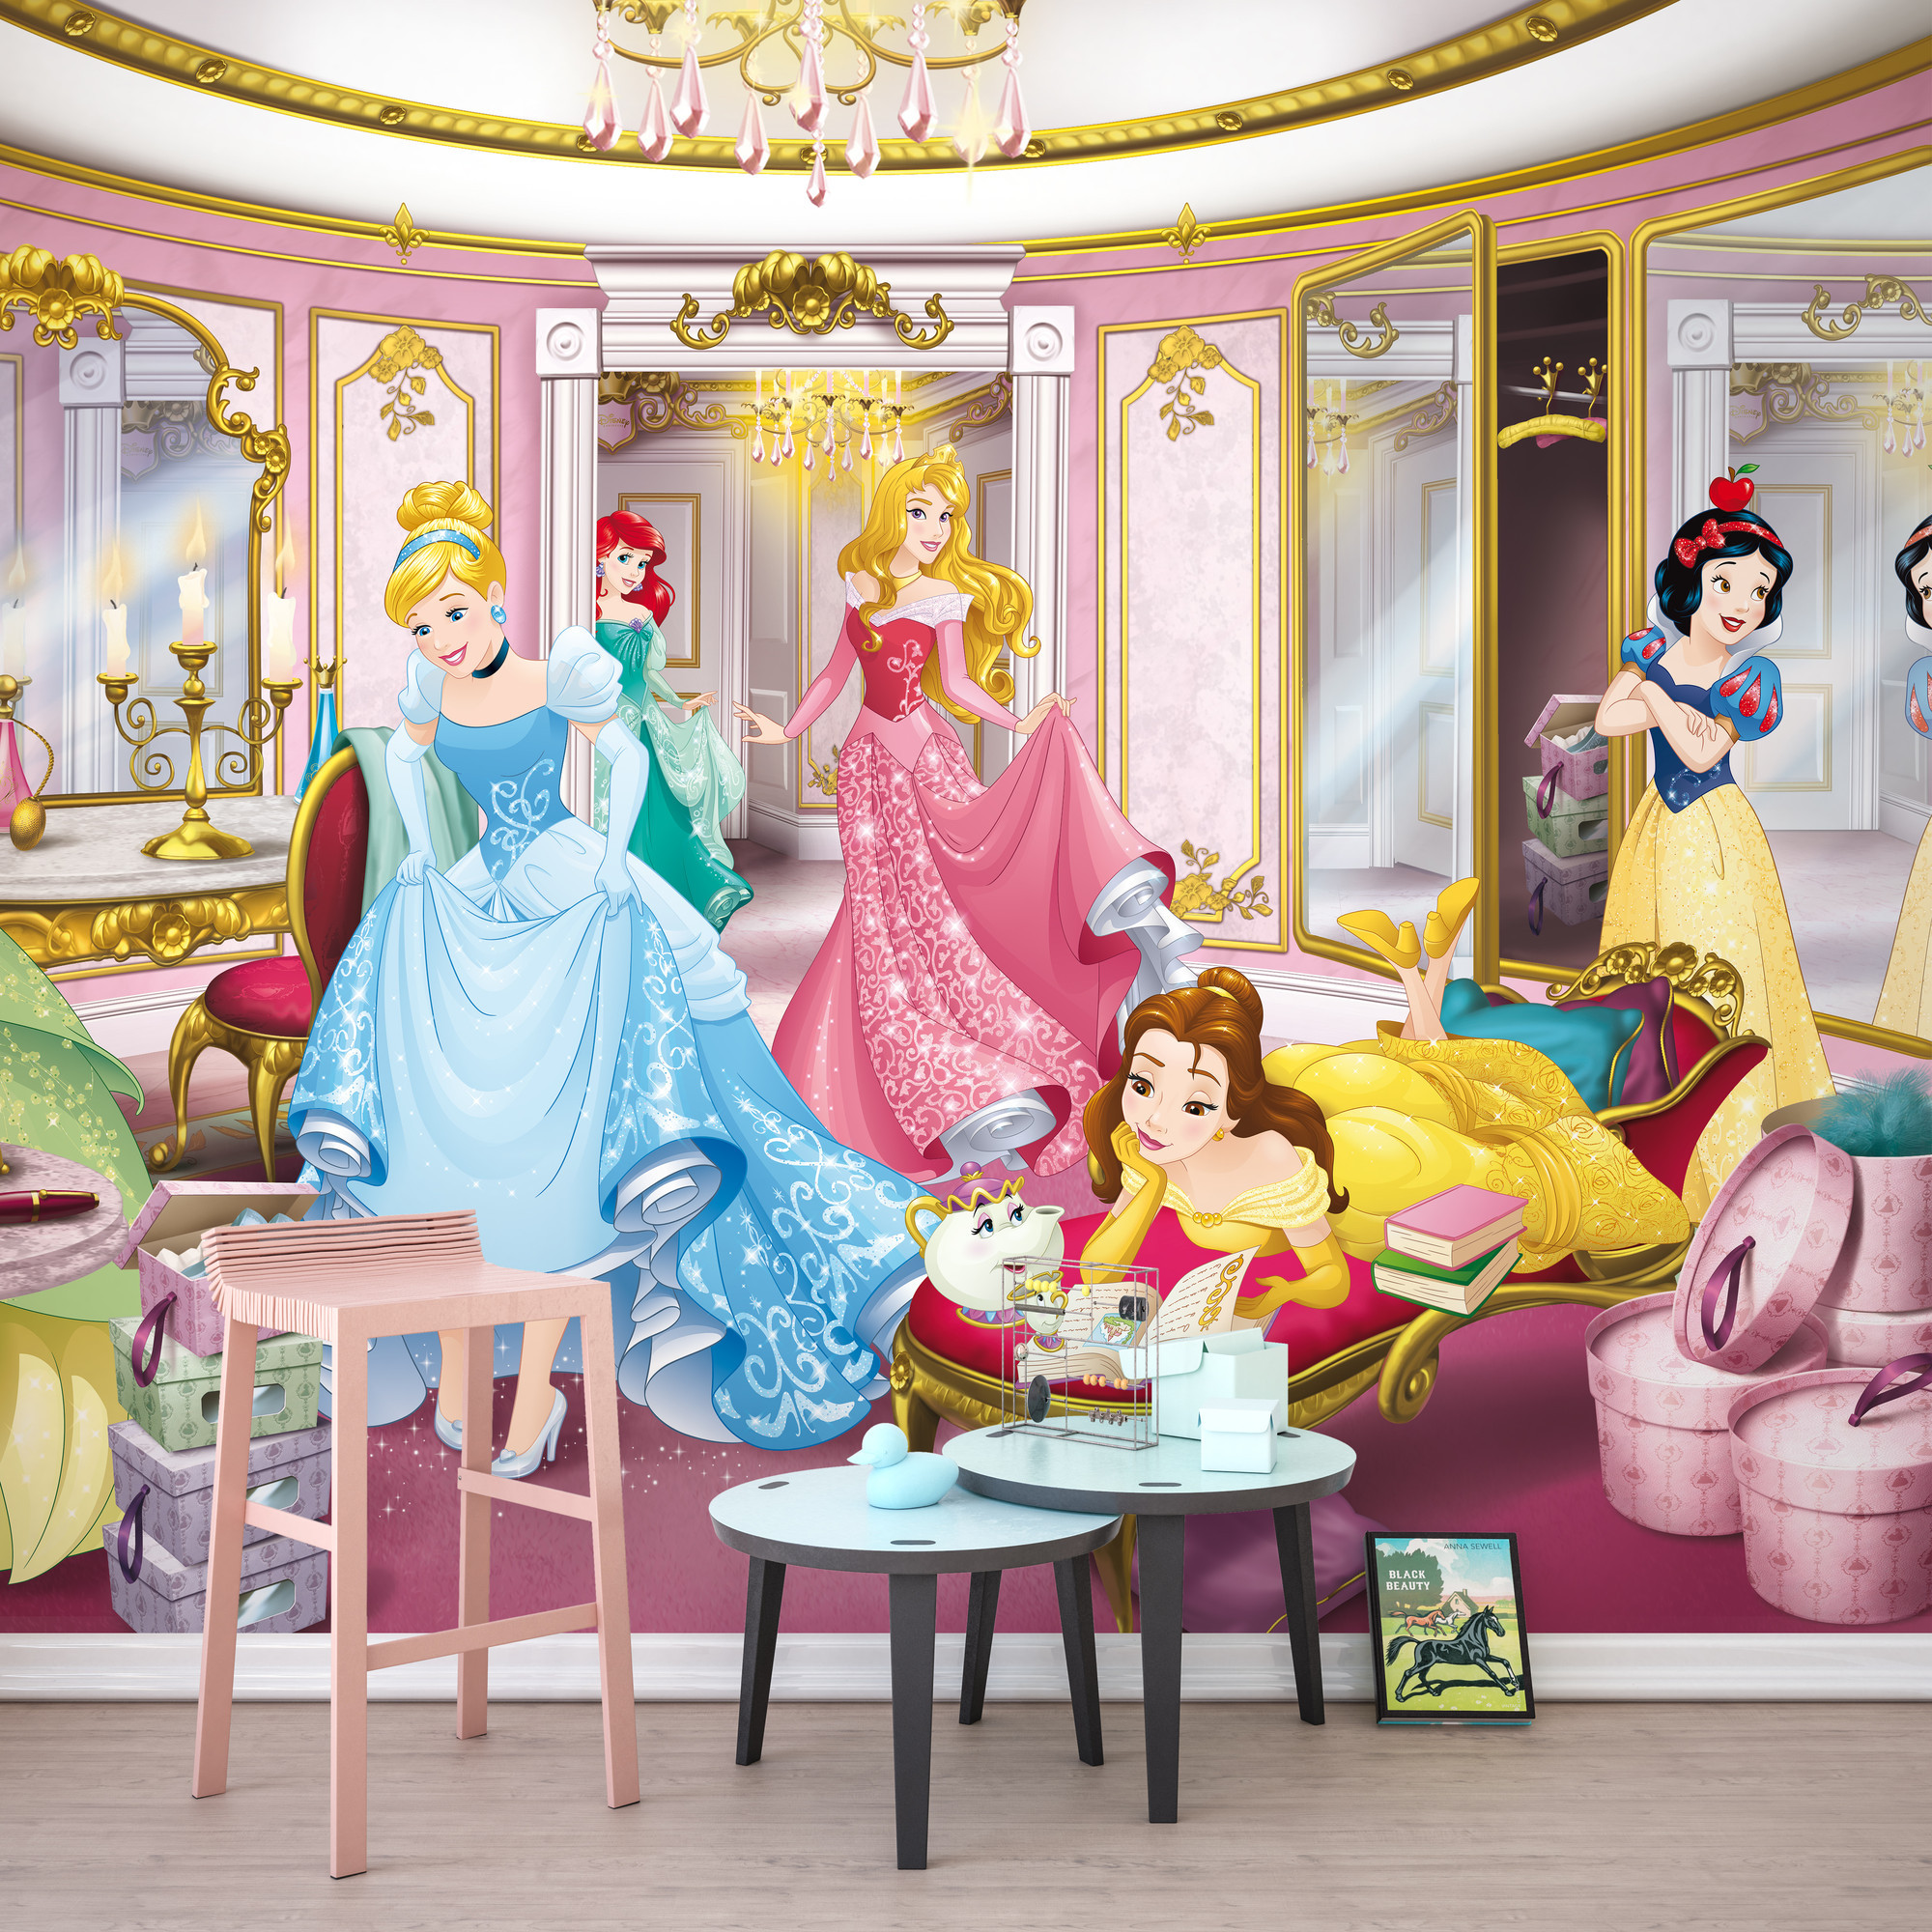 Fototapete Disney Princess Mirror 8 4108 Von Komar Disney